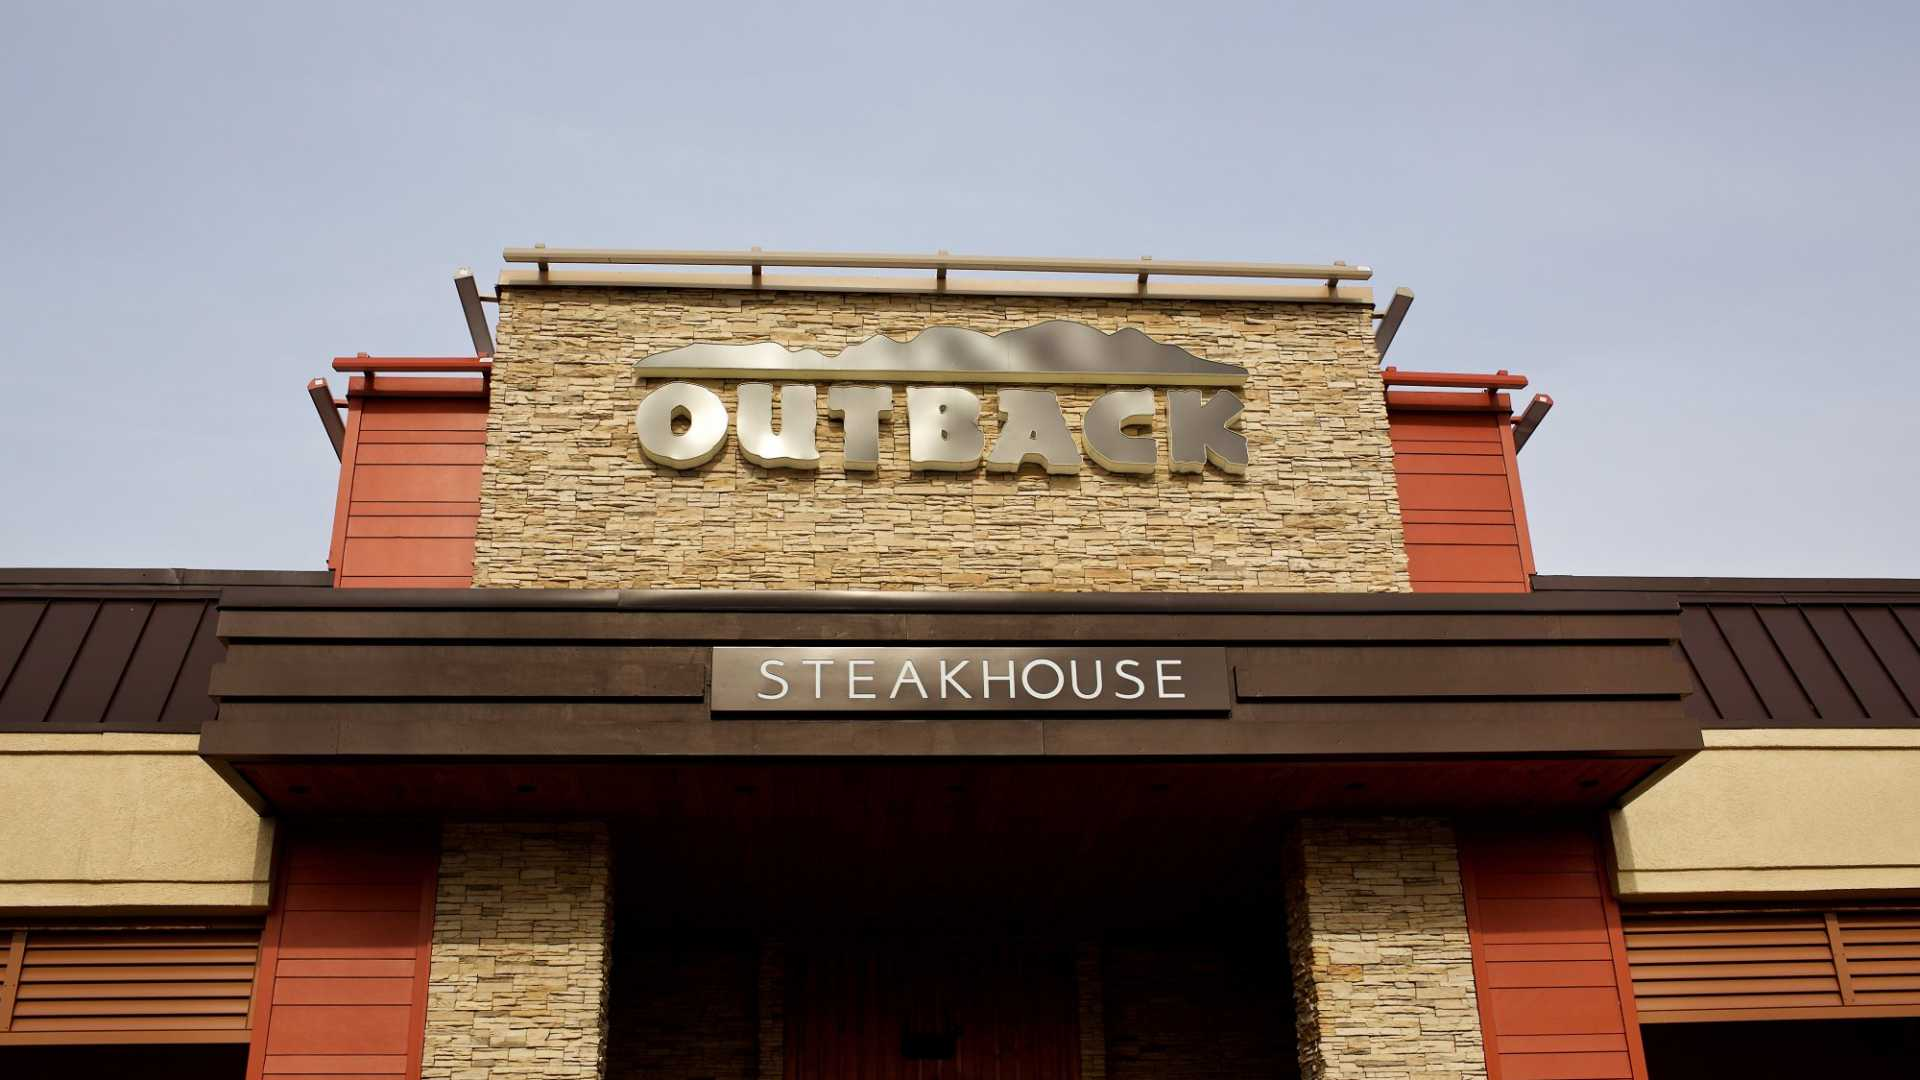 Outback Steakhouse Is Piloting an AI and Video Monitoring System